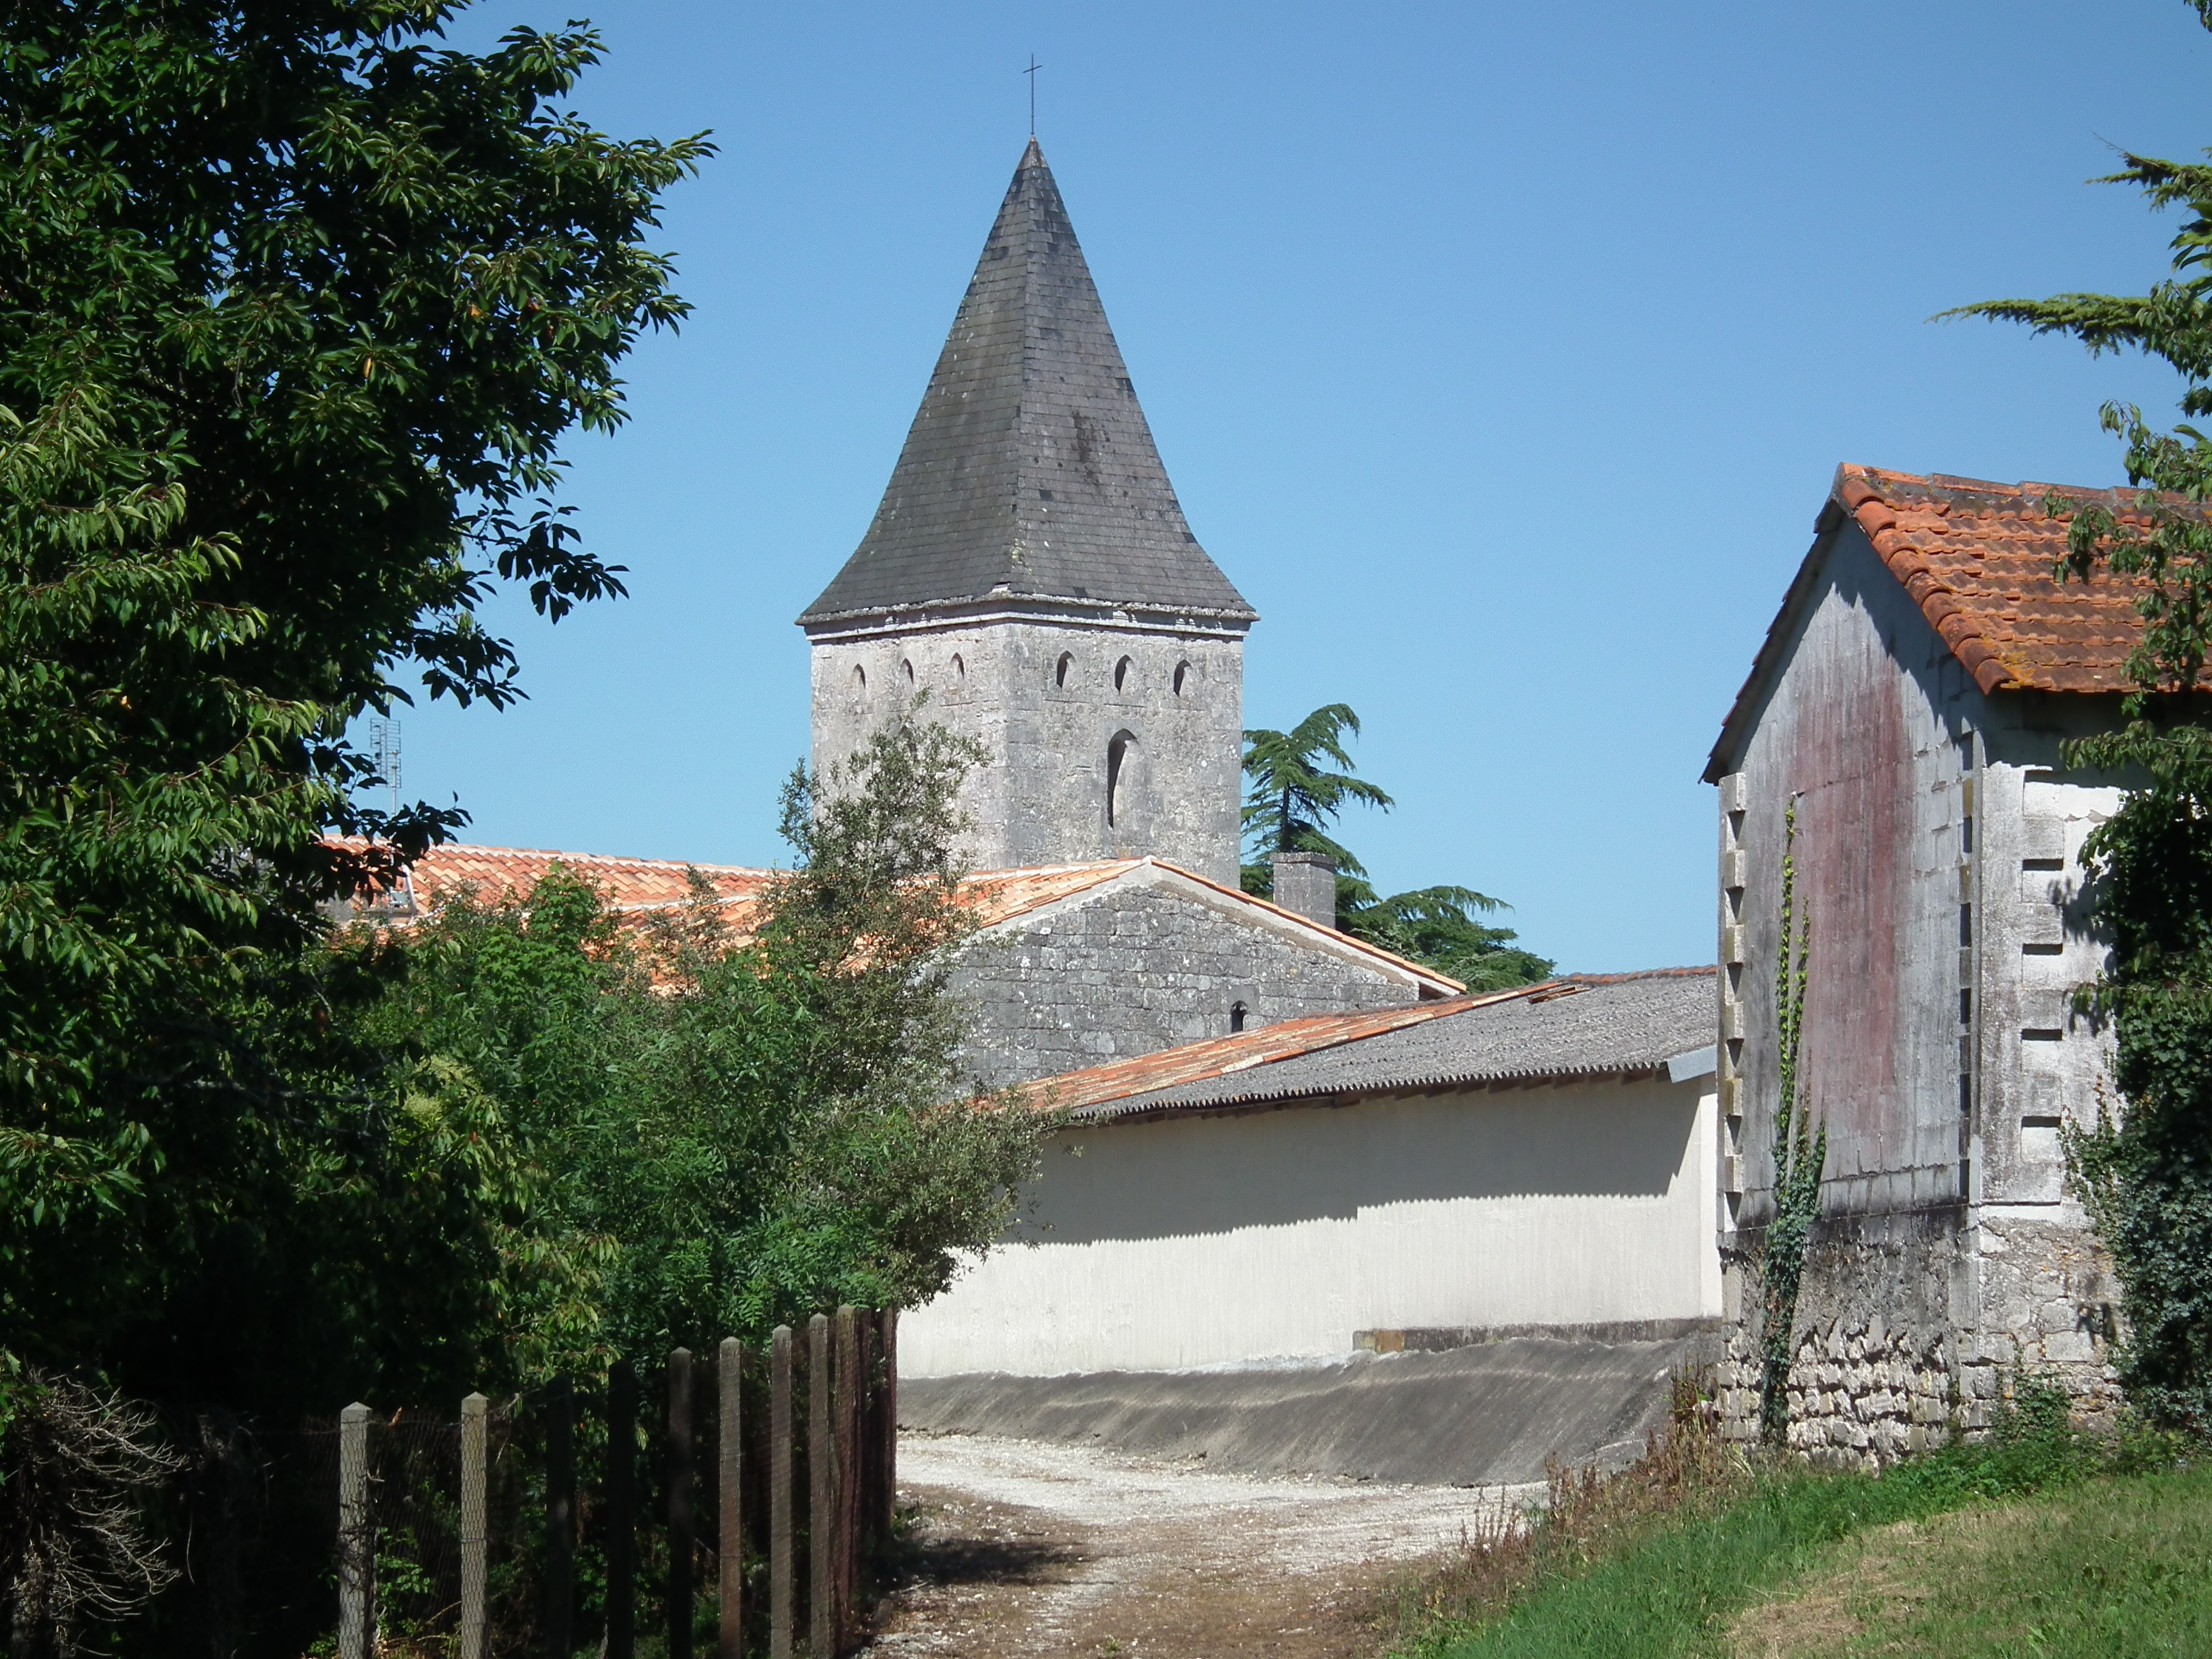 Saint-Georges-Antignac